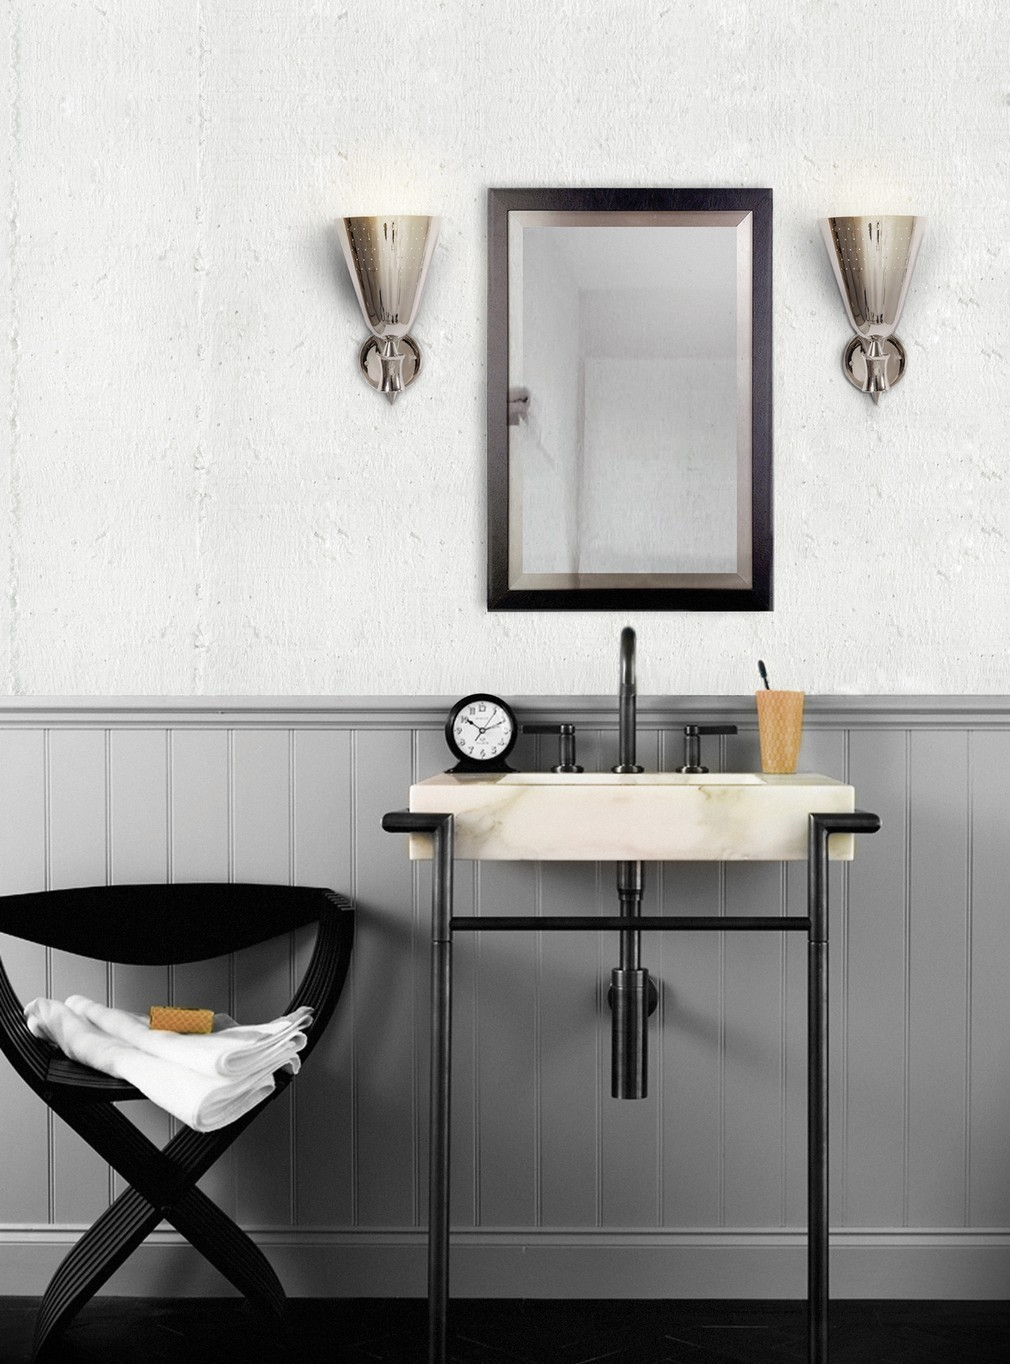 Having A Hard Time Styling Your Bathroom Decor We Got you 7 bathroom decor Having A Hard Time Styling Your Bathroom Decor? We Got you! Having A Hard Time Styling Your Bathroom Decor We Got you 7